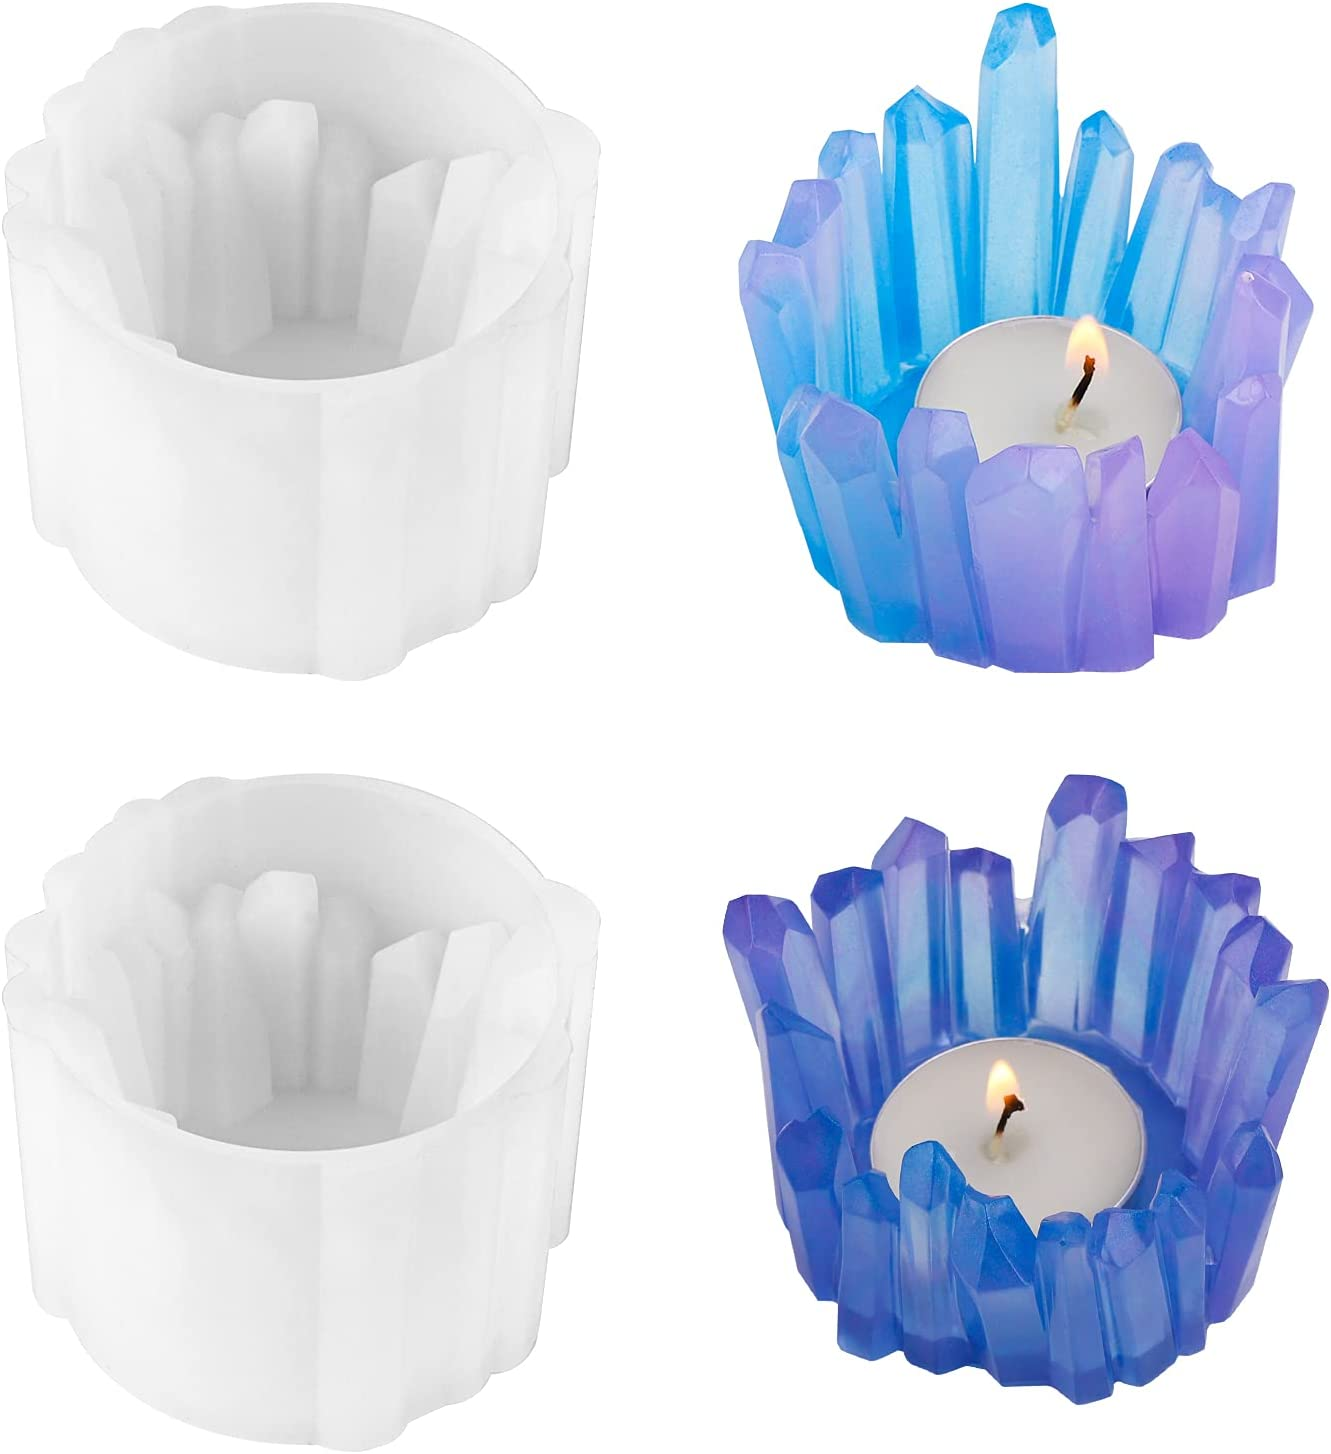 2PCS Candlestick Resin Molds Gartful Mol Candle Genuine Special Campaign Silicone Holder